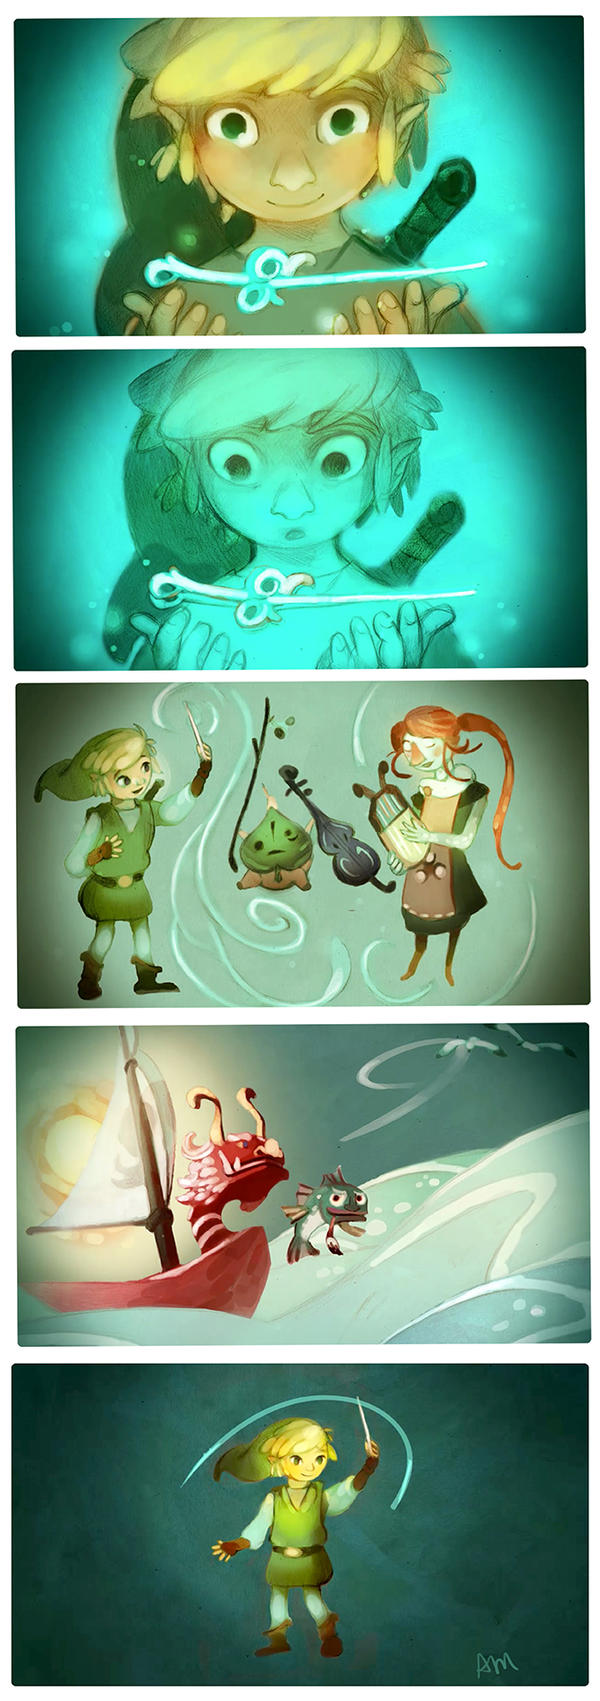 Wind Waker HD Fan Art Contest (Top 5 Winner!) by AmandaMullins